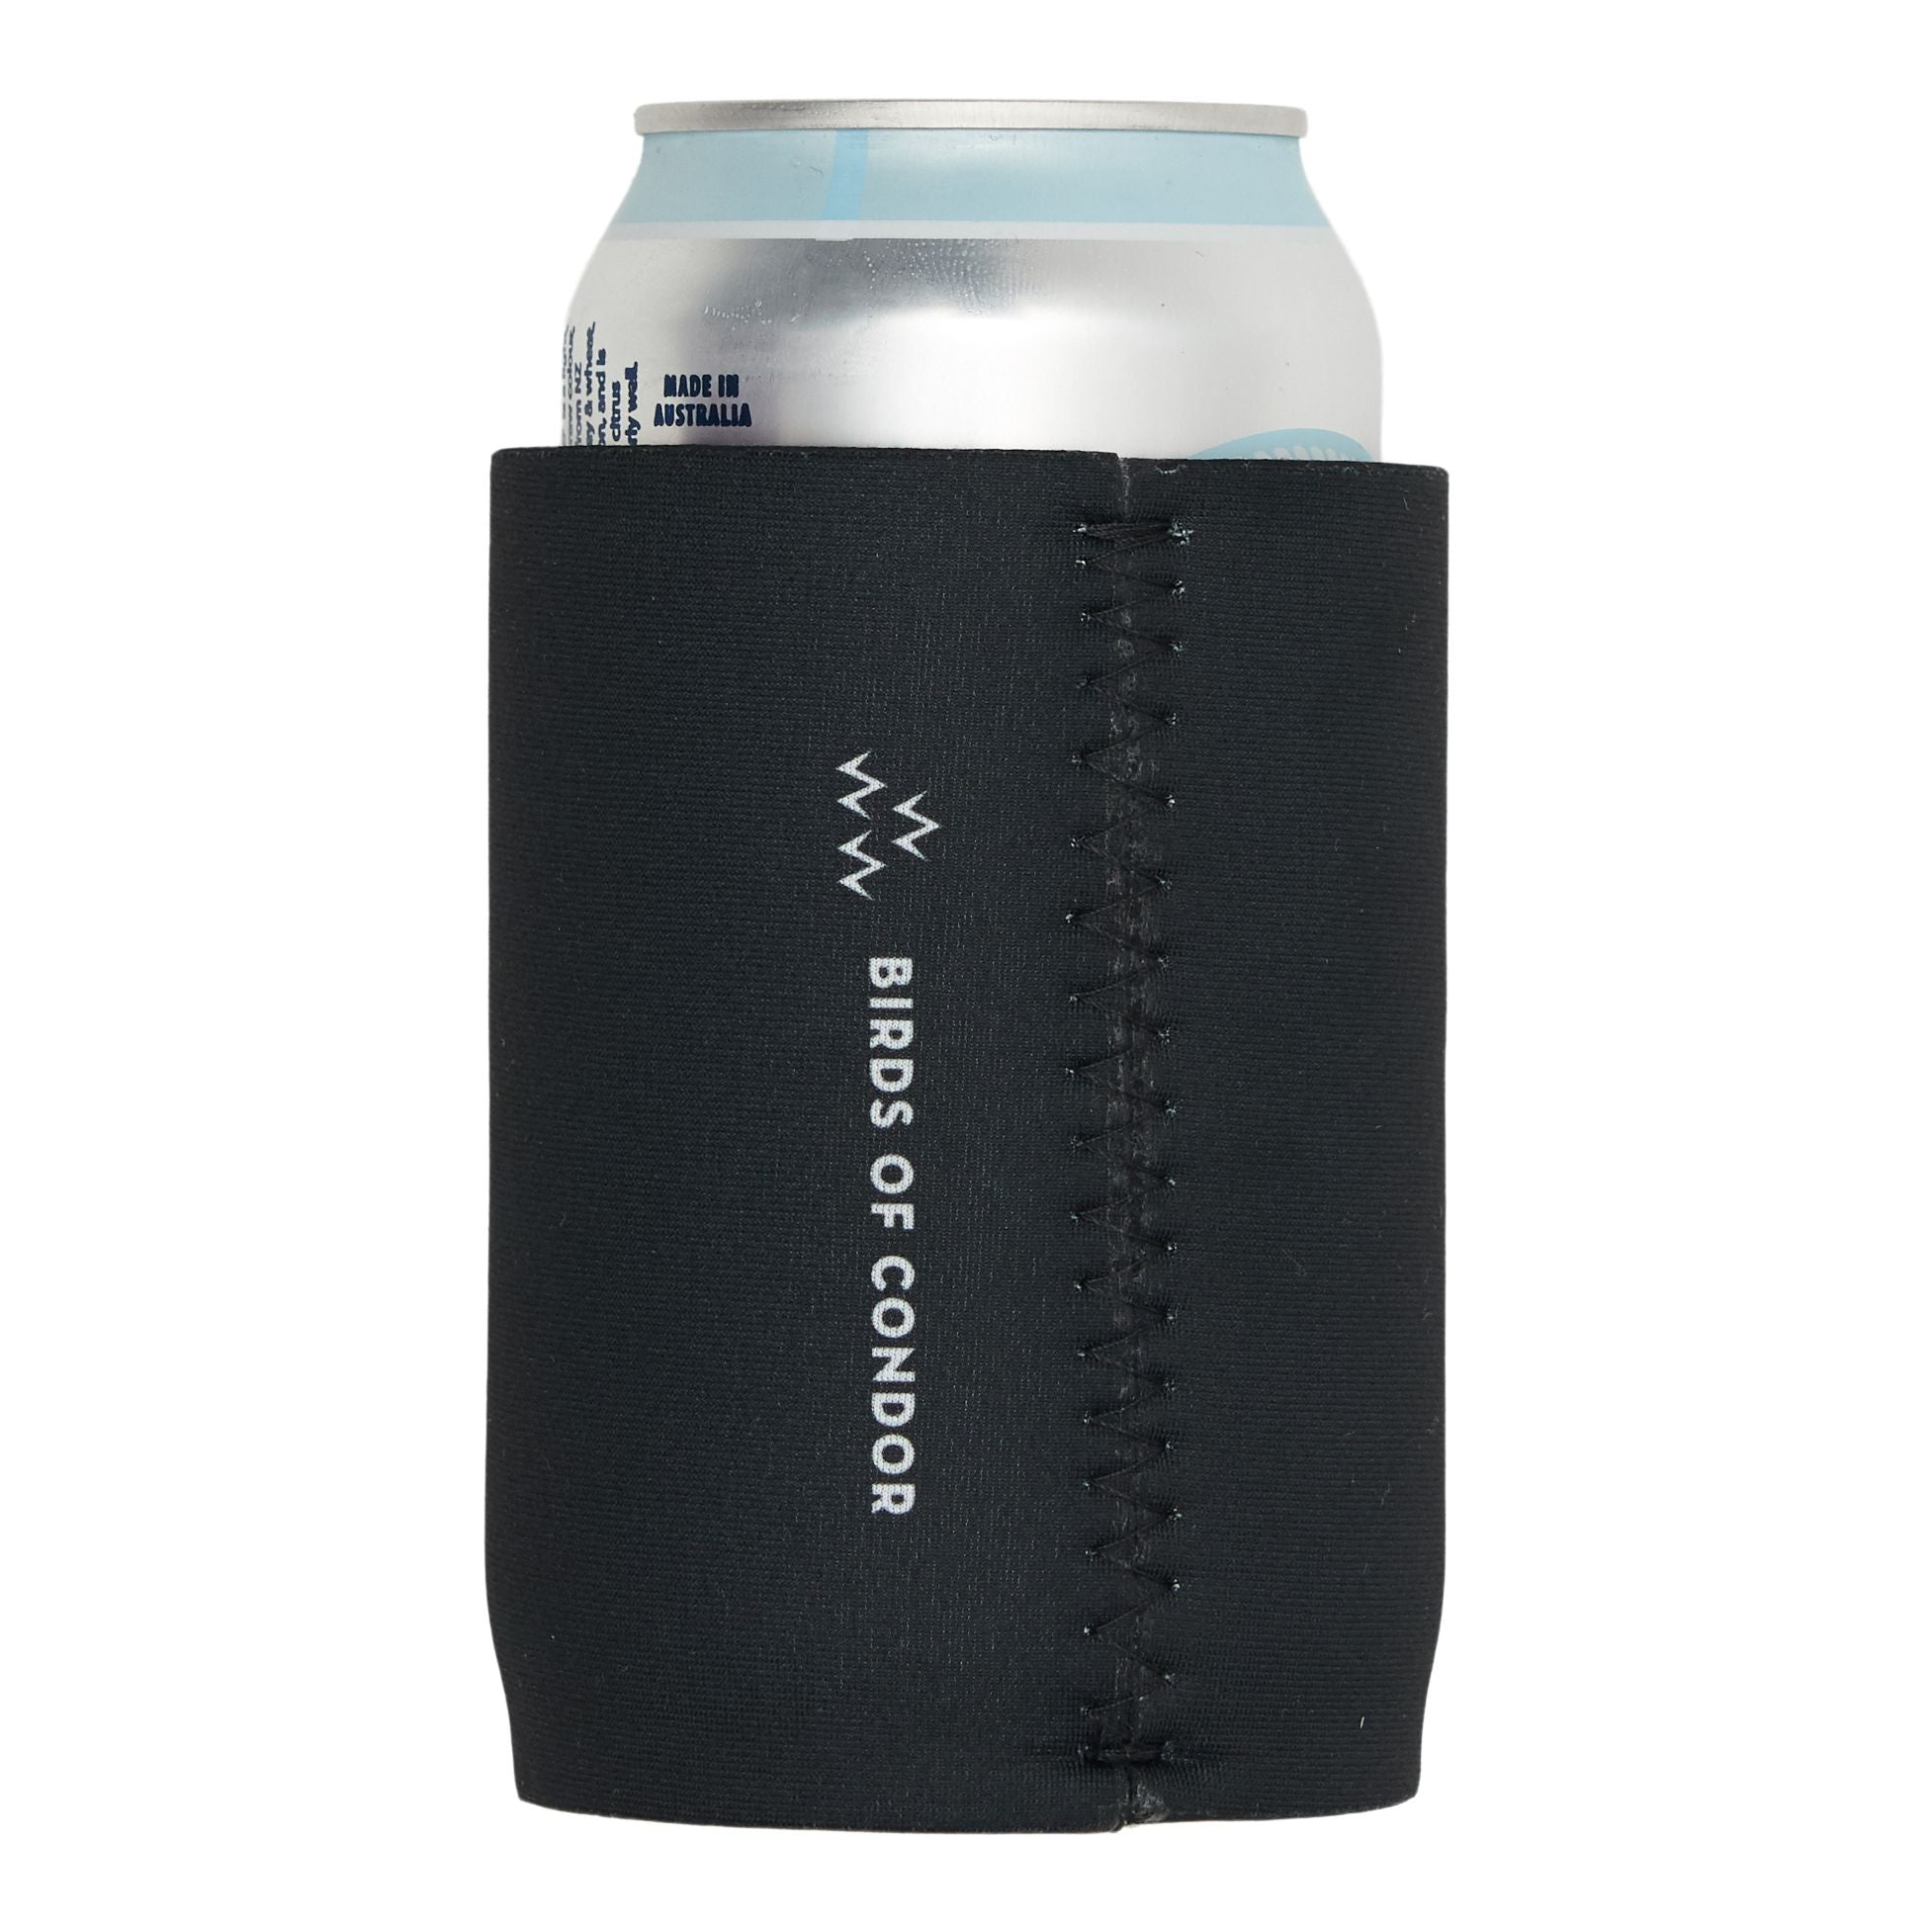 birds-of-condor-birdie-bogey-golf-beer-koozie-stubby-cooler